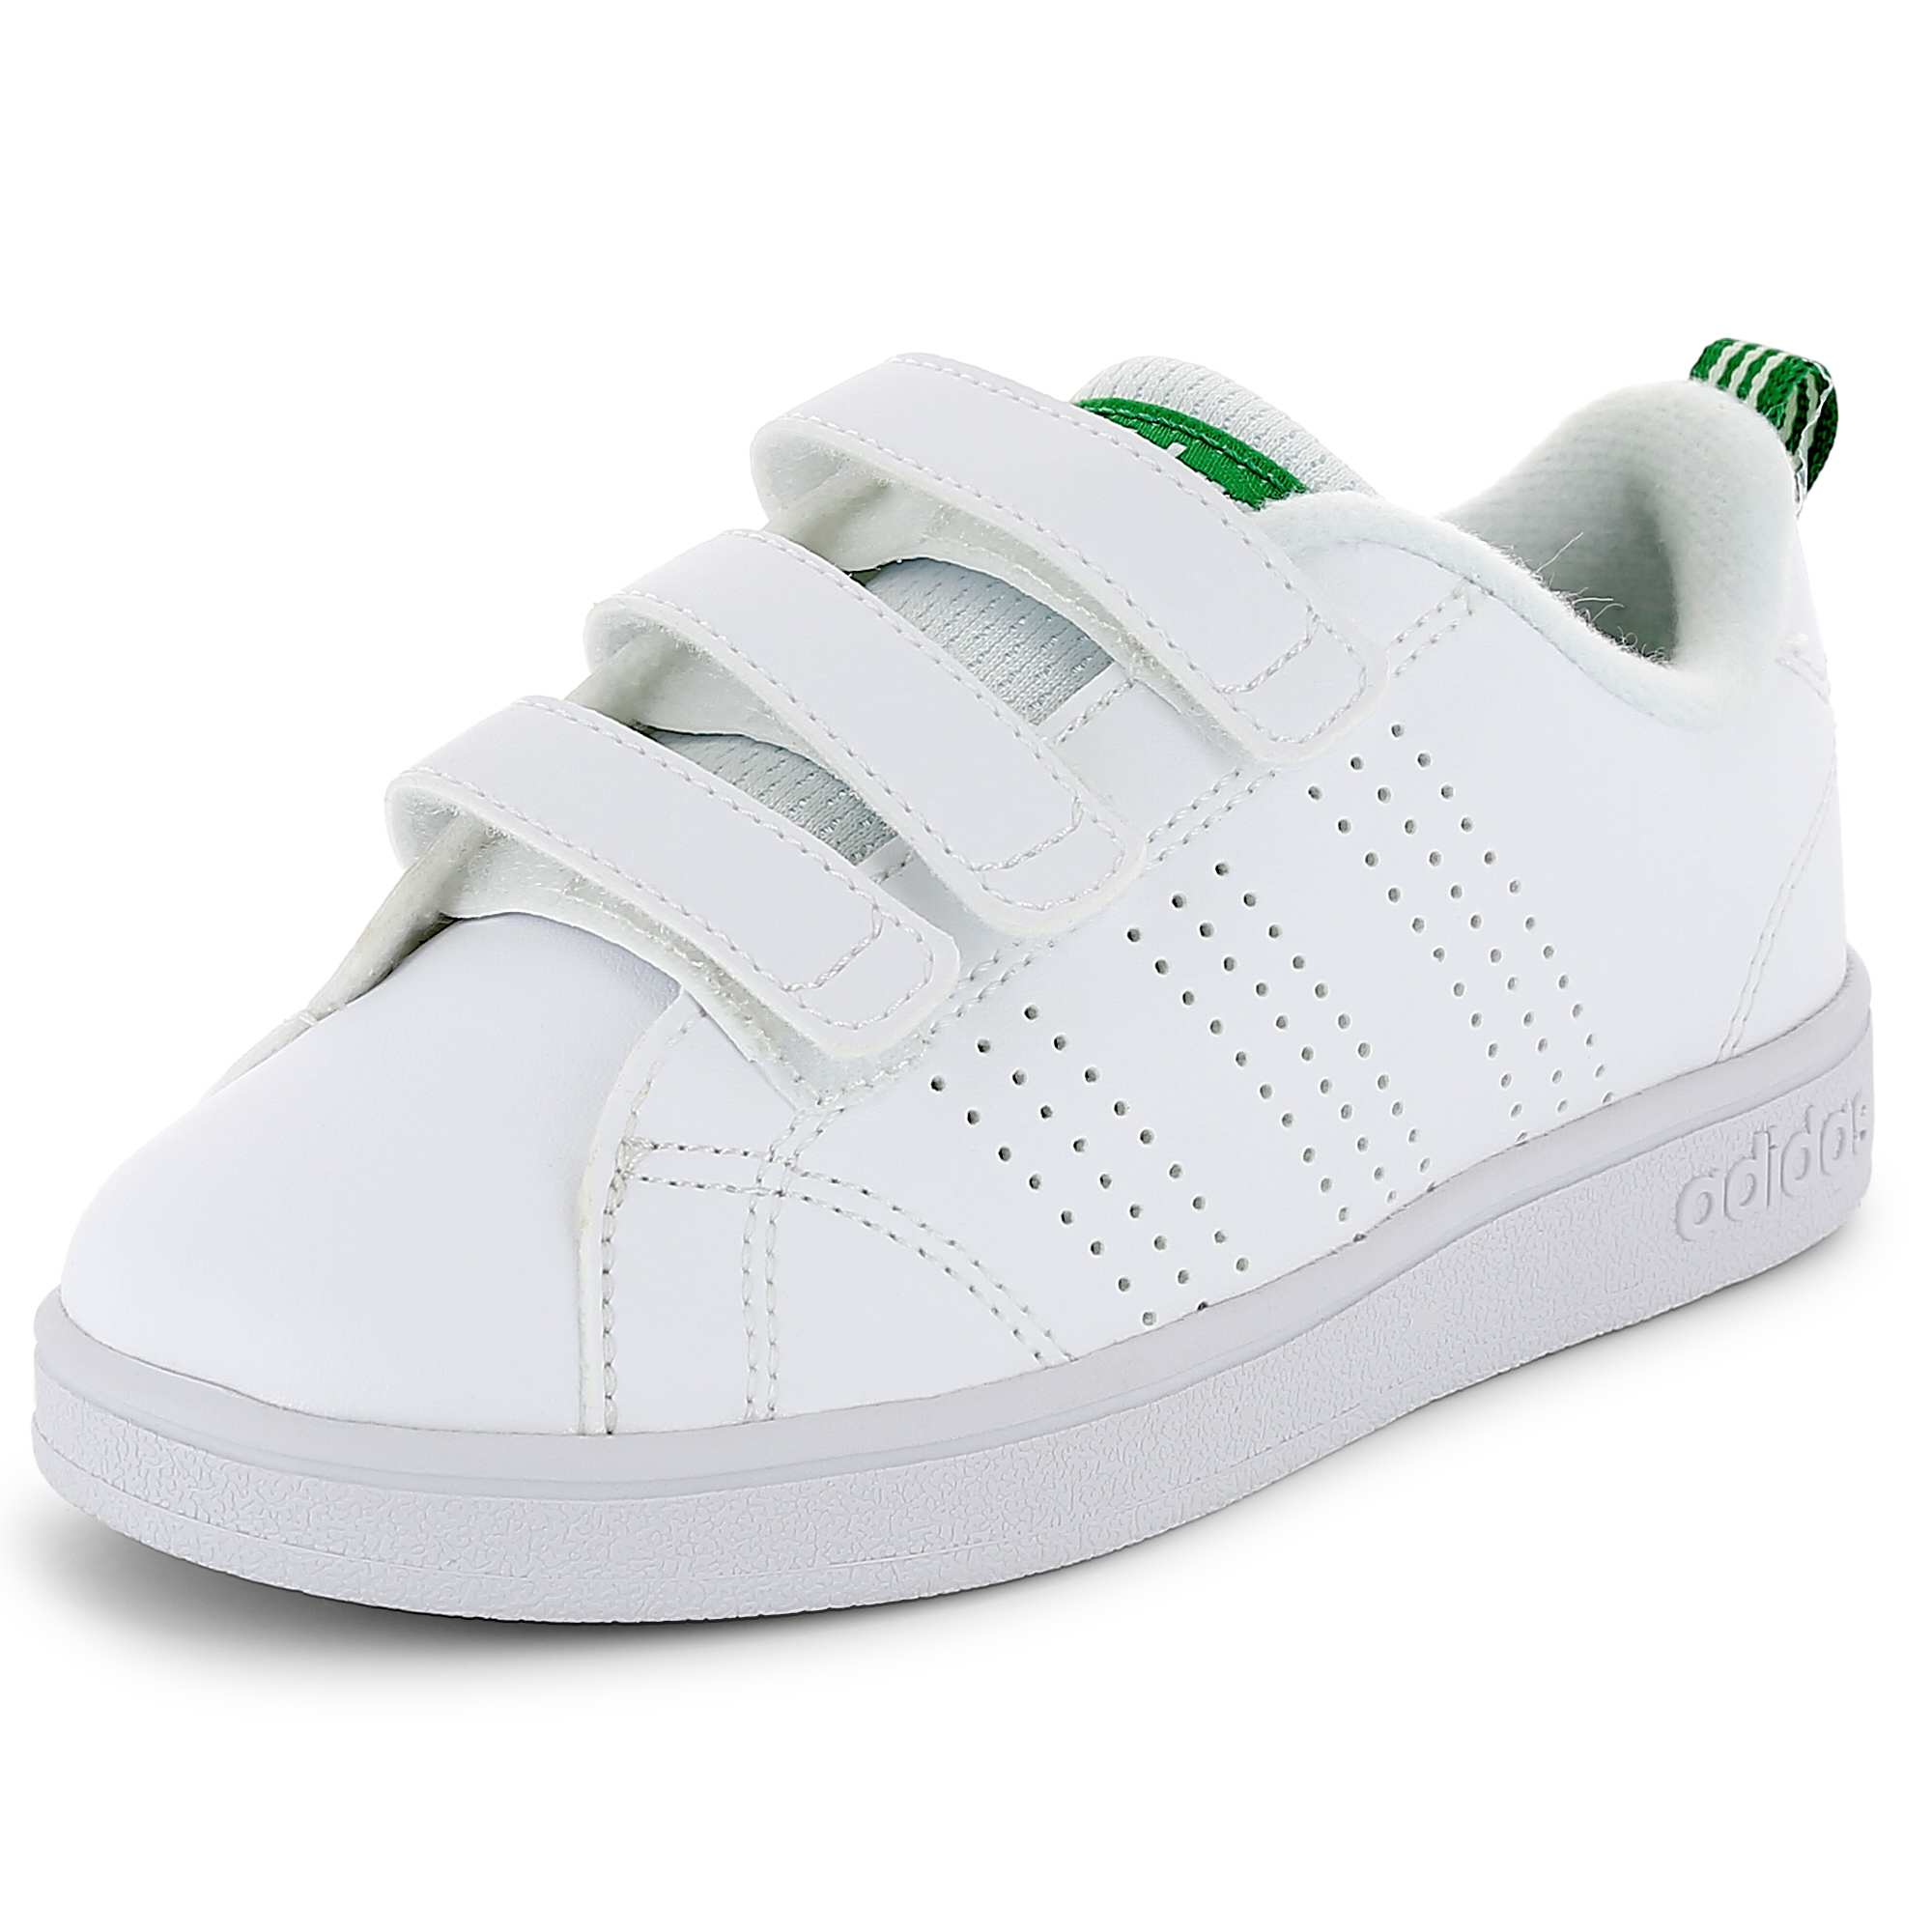 Chaussures Adidas Dragon 40 blanches Casual enfant 8K3g2NO